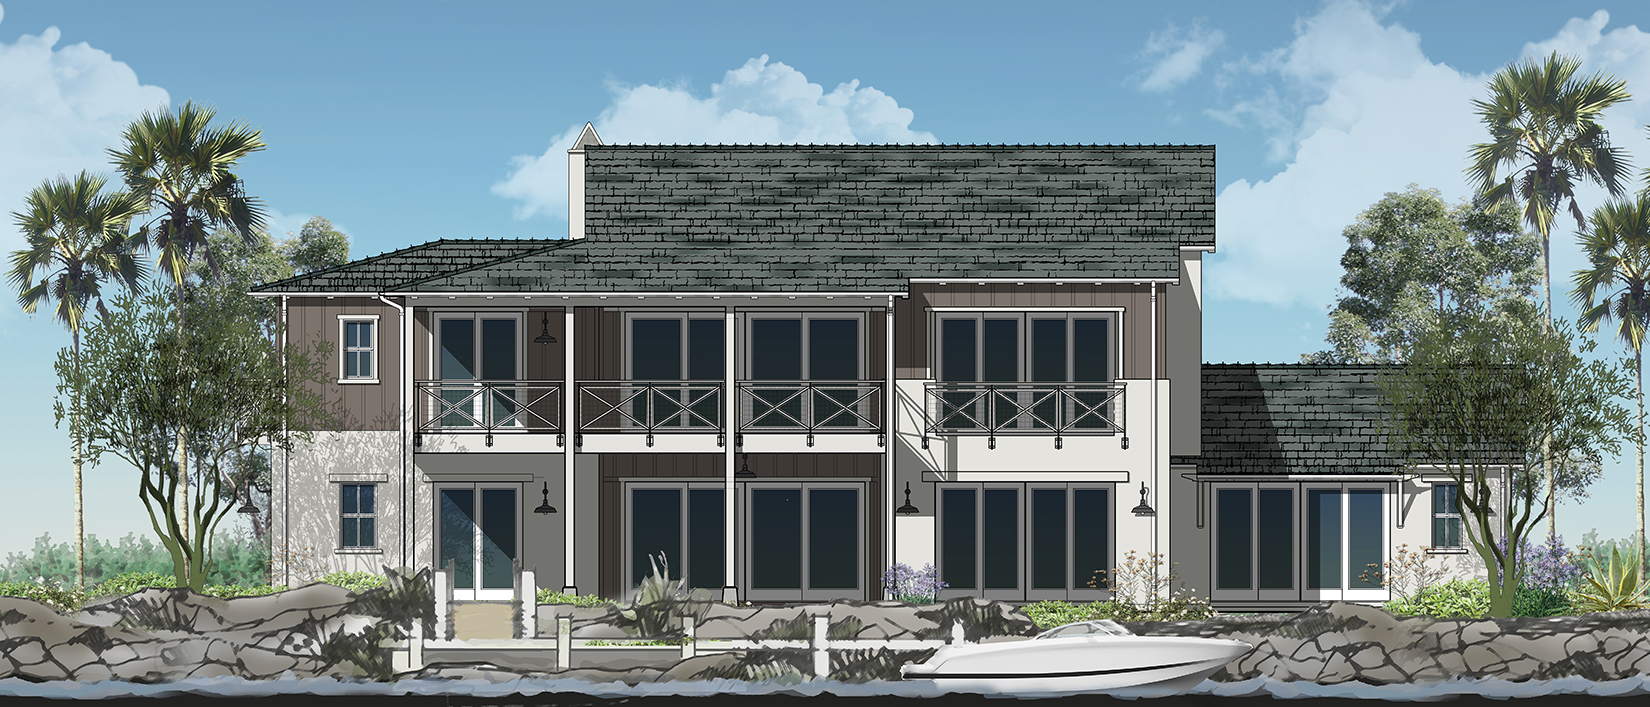 17066_A6A-ELEV-Rear-Elevation-1650x707.jpg